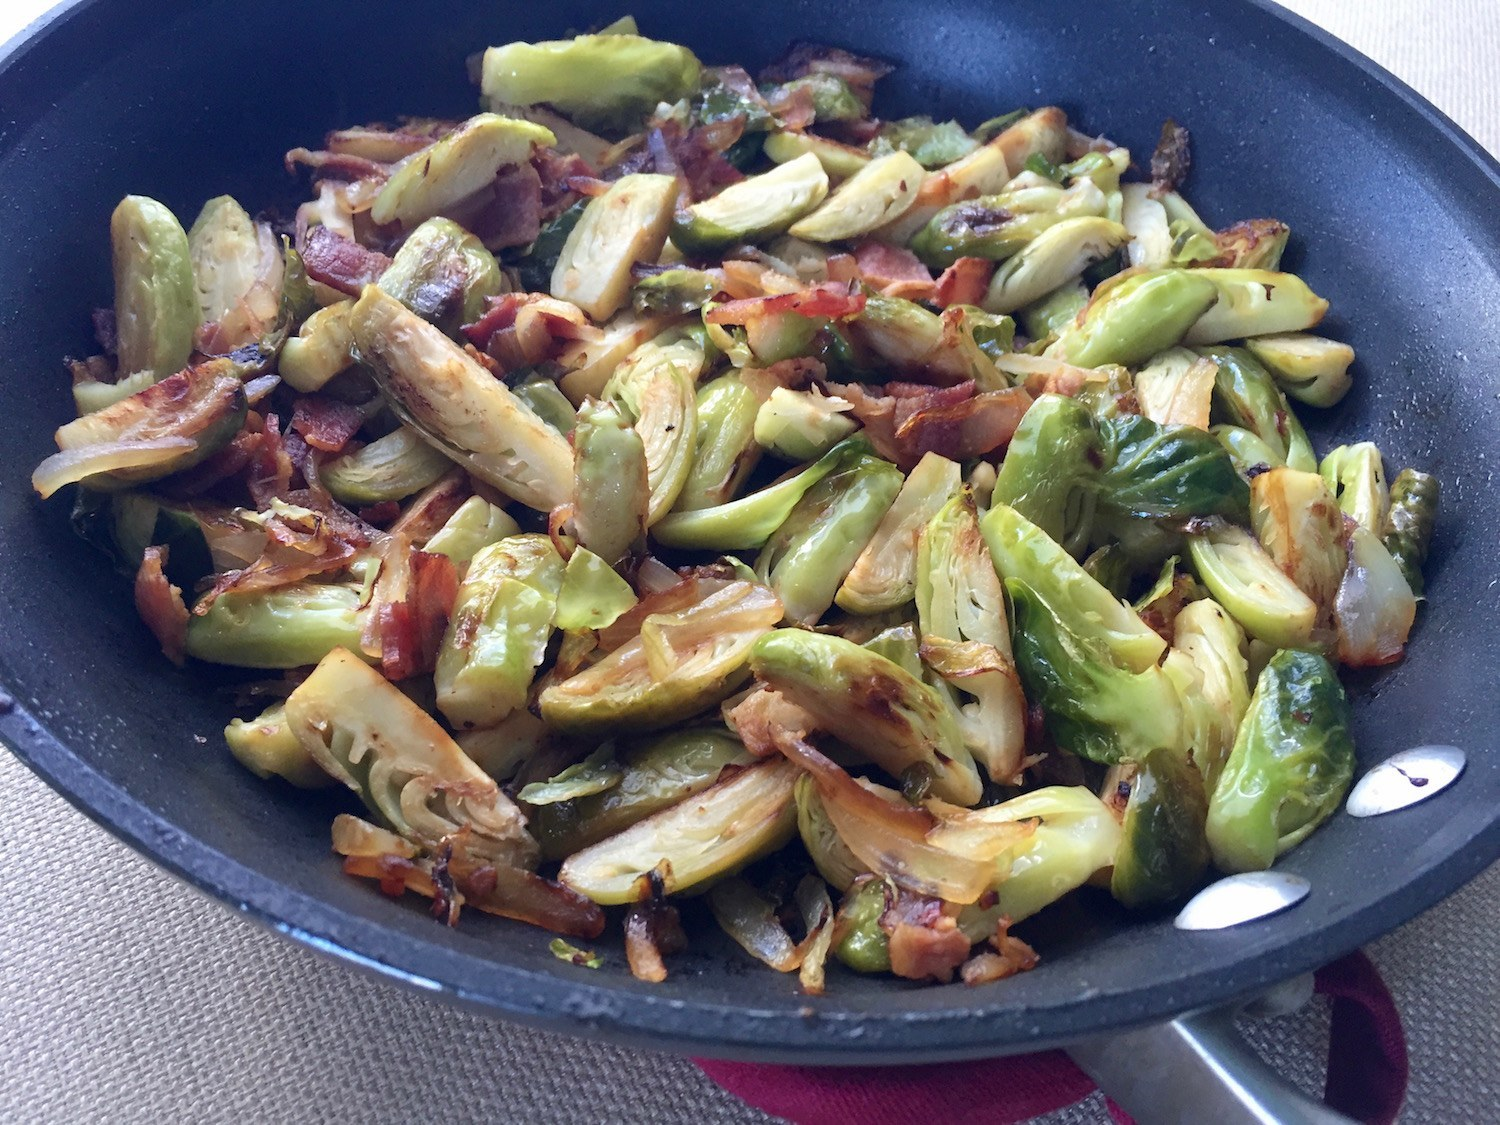 Brussels sprouts in a pan with onion and bacon